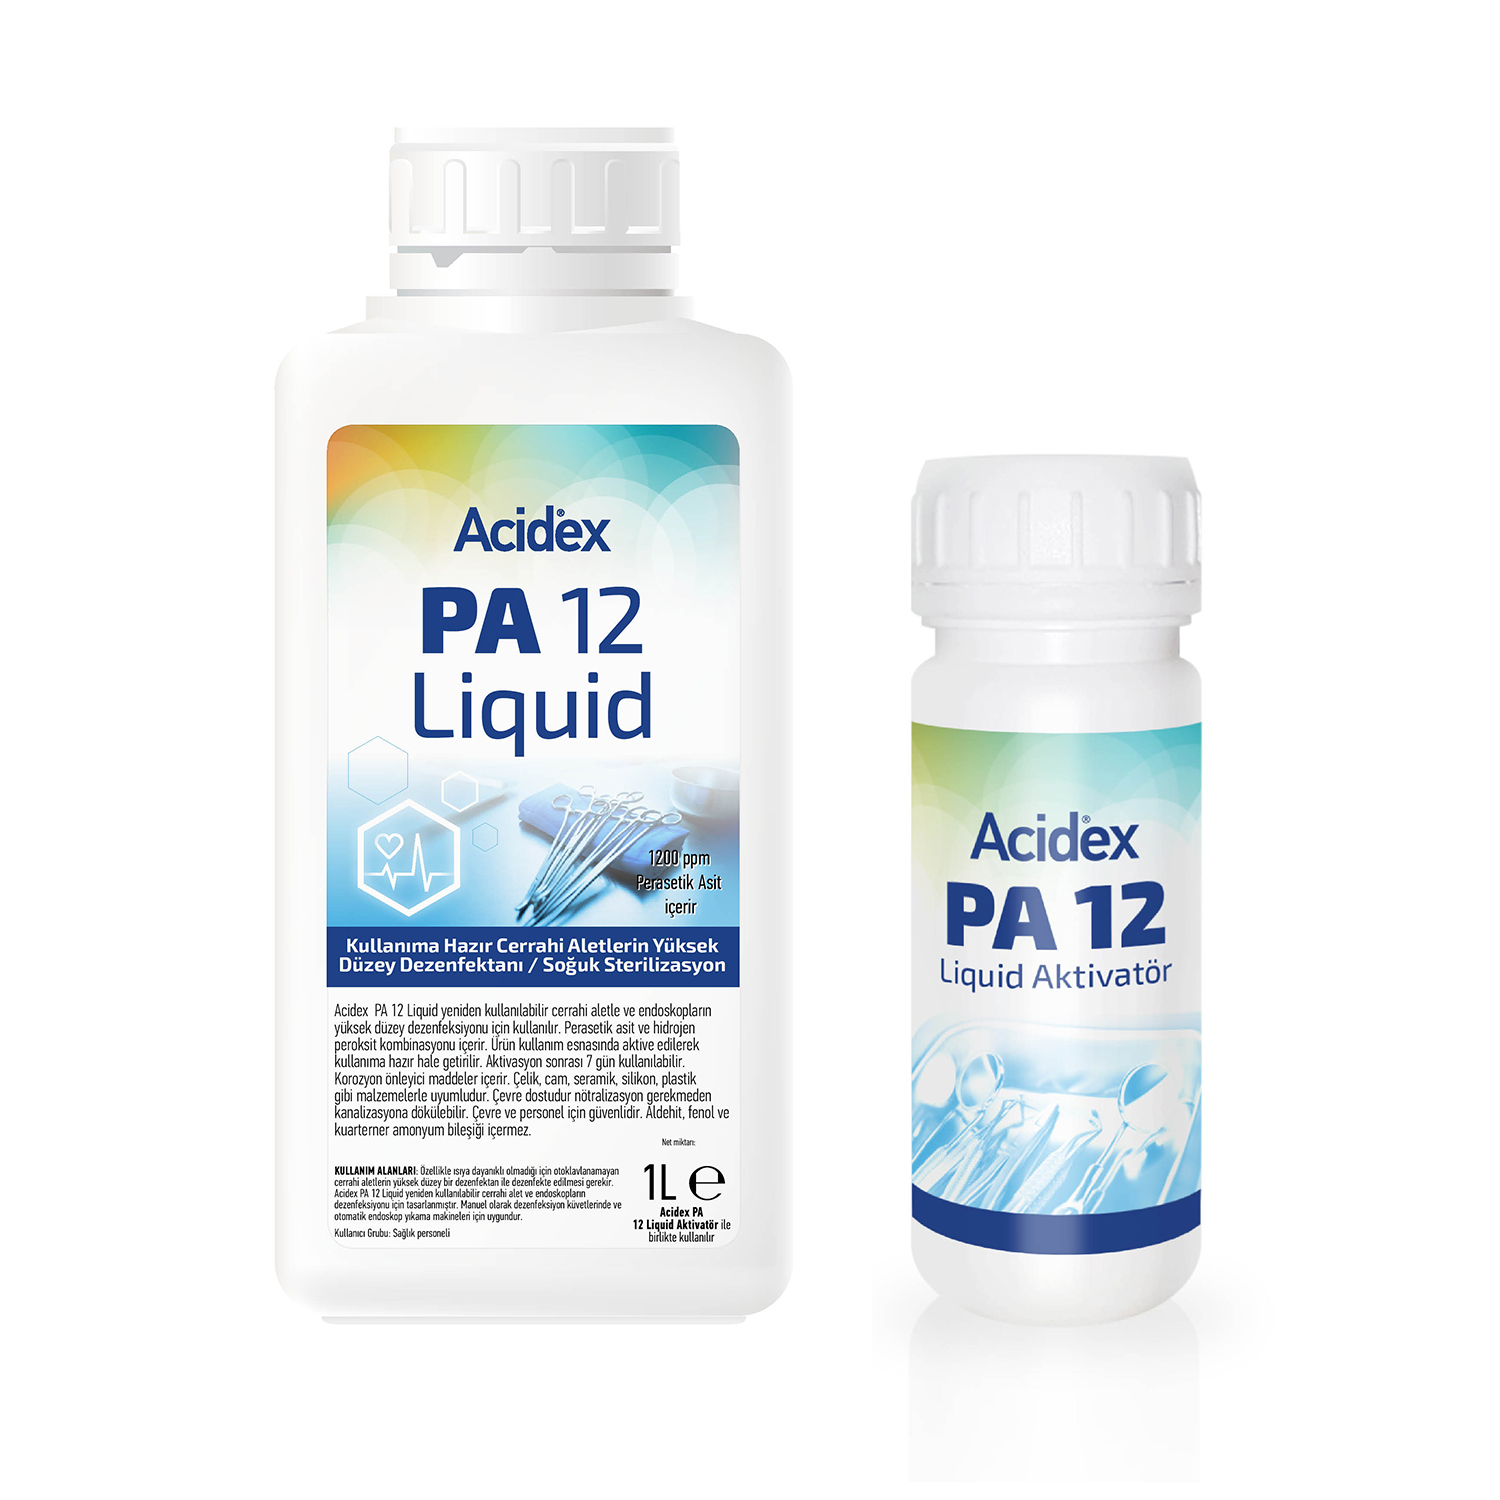 Acidex PA 12 Liquid